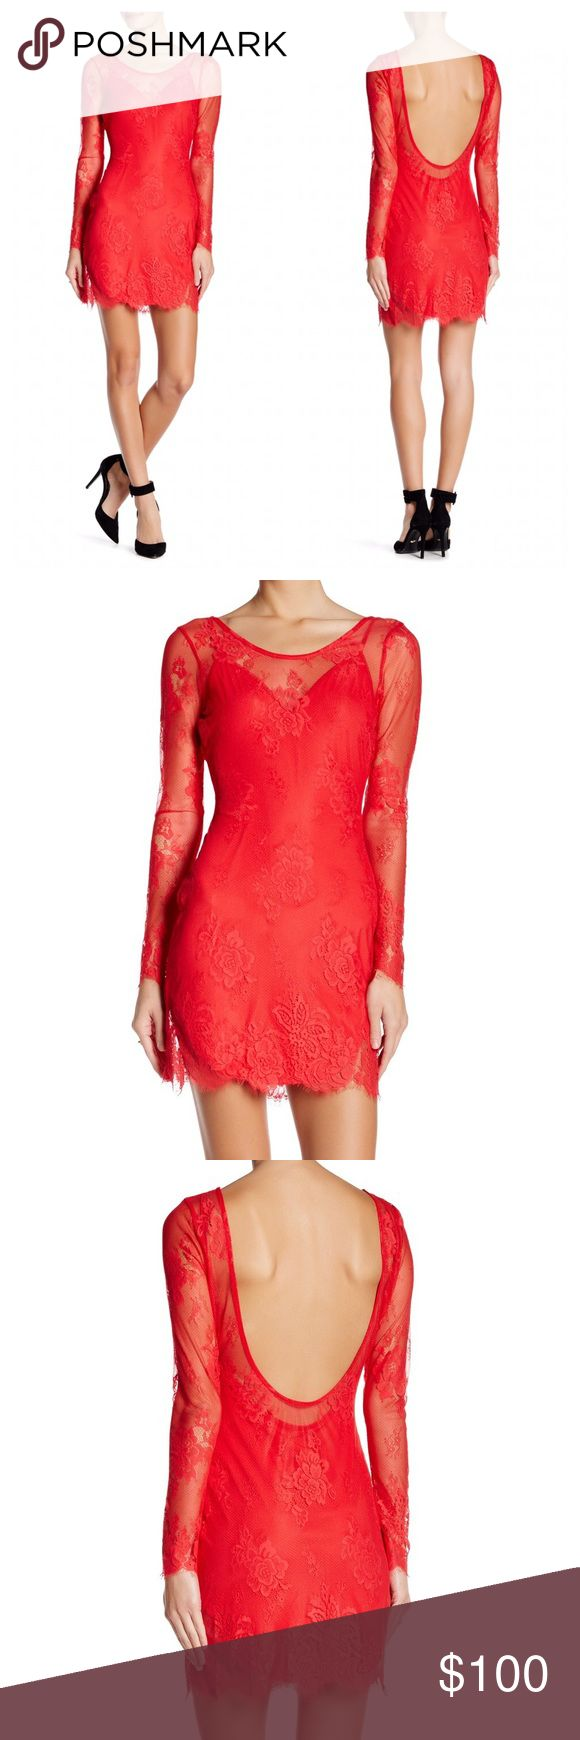 """NBD Dresses Lace Red Open Back Mini Dress L NWT New with tags. Size large. Red color. Similar to For Love & Lemons. Details - Crew neck  - Long sleeves  - Open back - Removable v-neck cami - Lace construction  - Embroidered knit detail  - Frayed hem - Approx. 32.5"""" length - Imported Fiber Content Shell: 55% nylon, 45% cotton  Lining: 95% polyester, 5% elastane Care Hand wash cold Additional Info Fit: this style fits true to size.  Model's stats for sizing: - Height: 5'10"""" - Bust: 32""""…"""